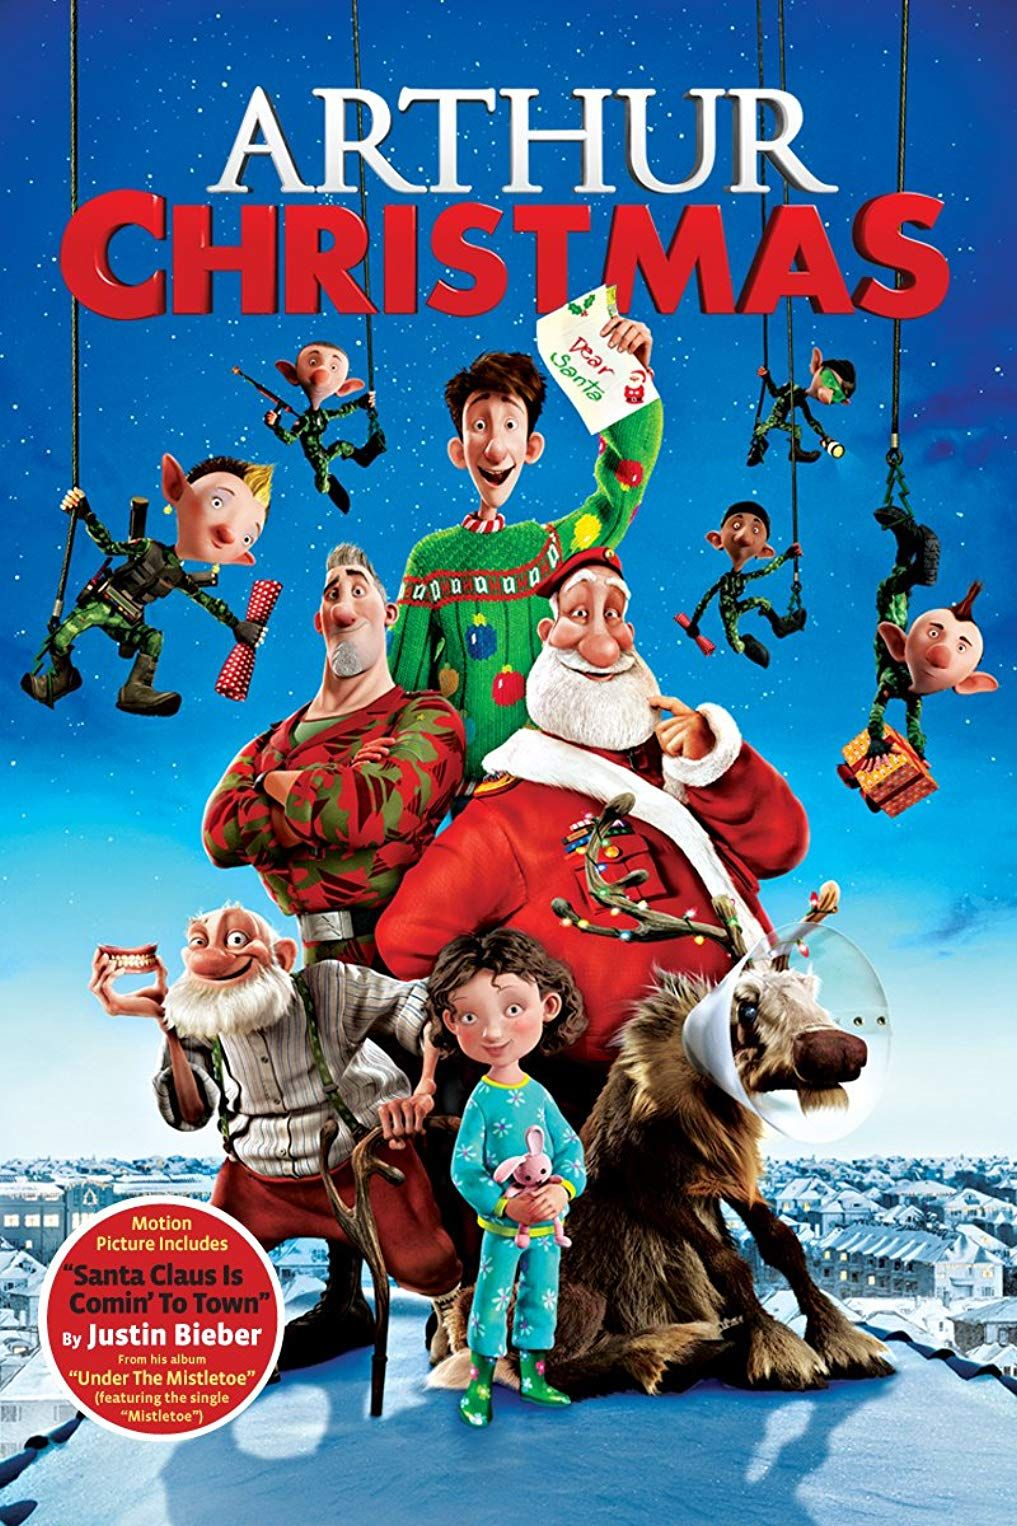 Arthur Christmas Characters.55 Best Christmas Movies Of All Time Classic Holiday Films